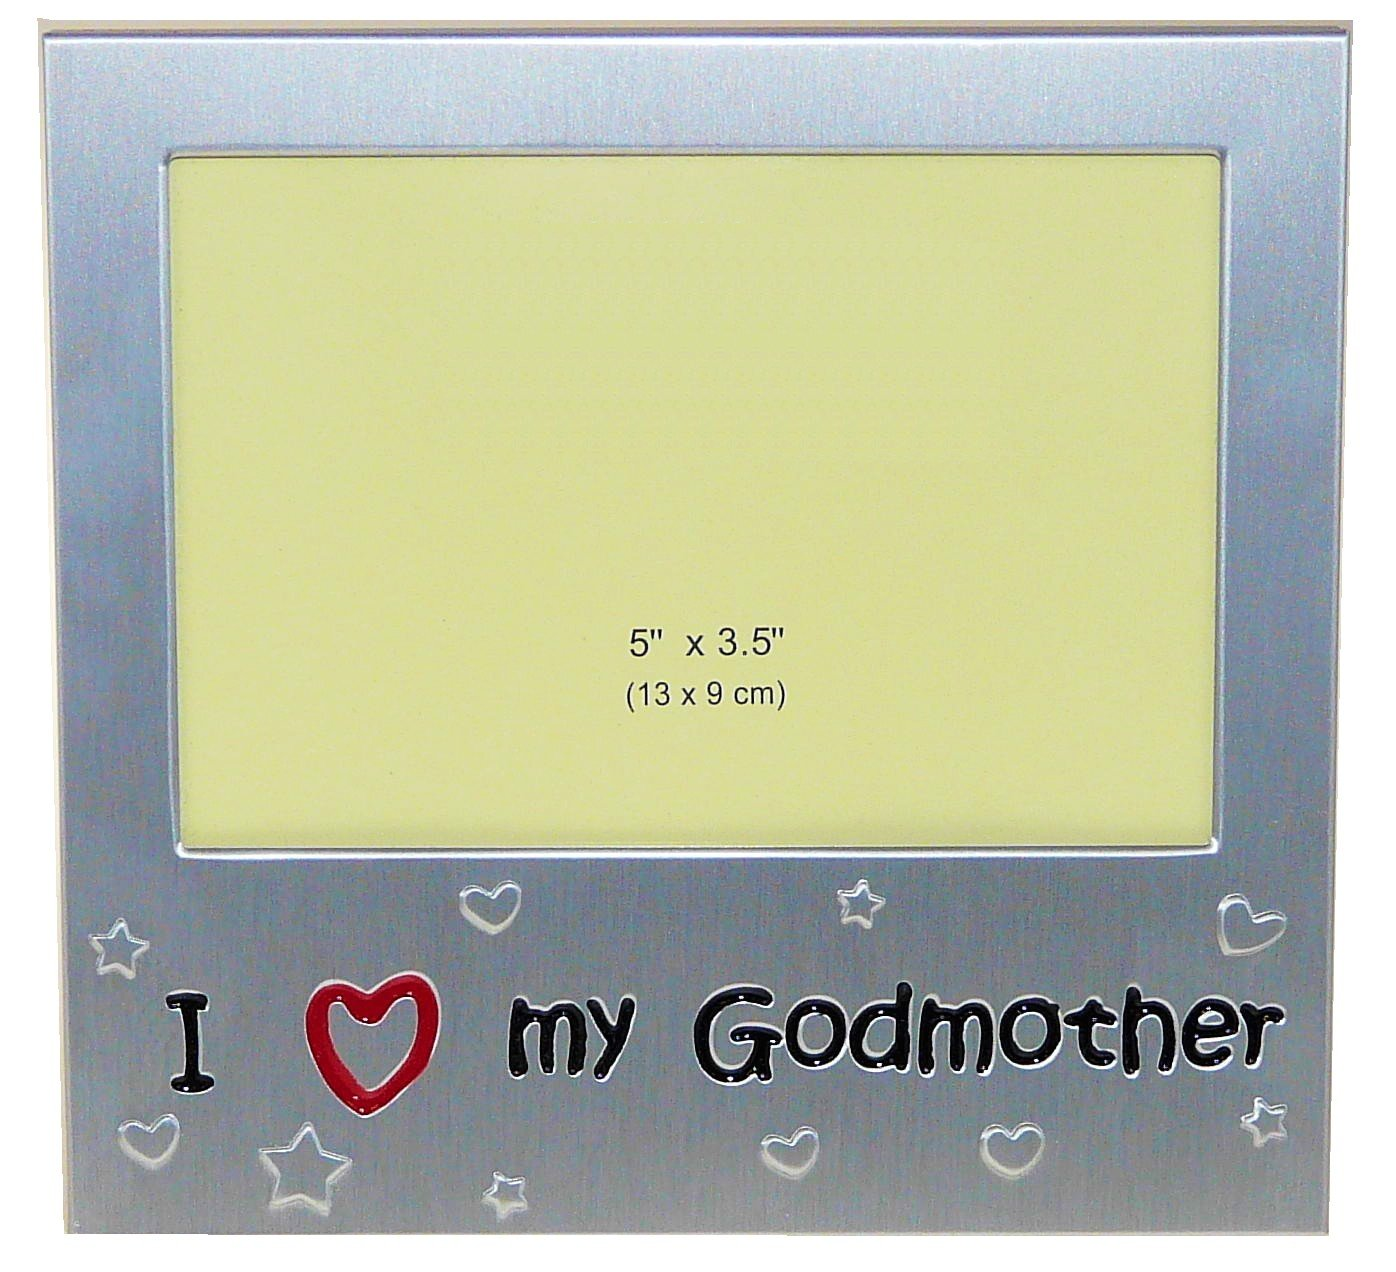 I Love My Godmother Photo Picture Frame Gift 5 x 3.5